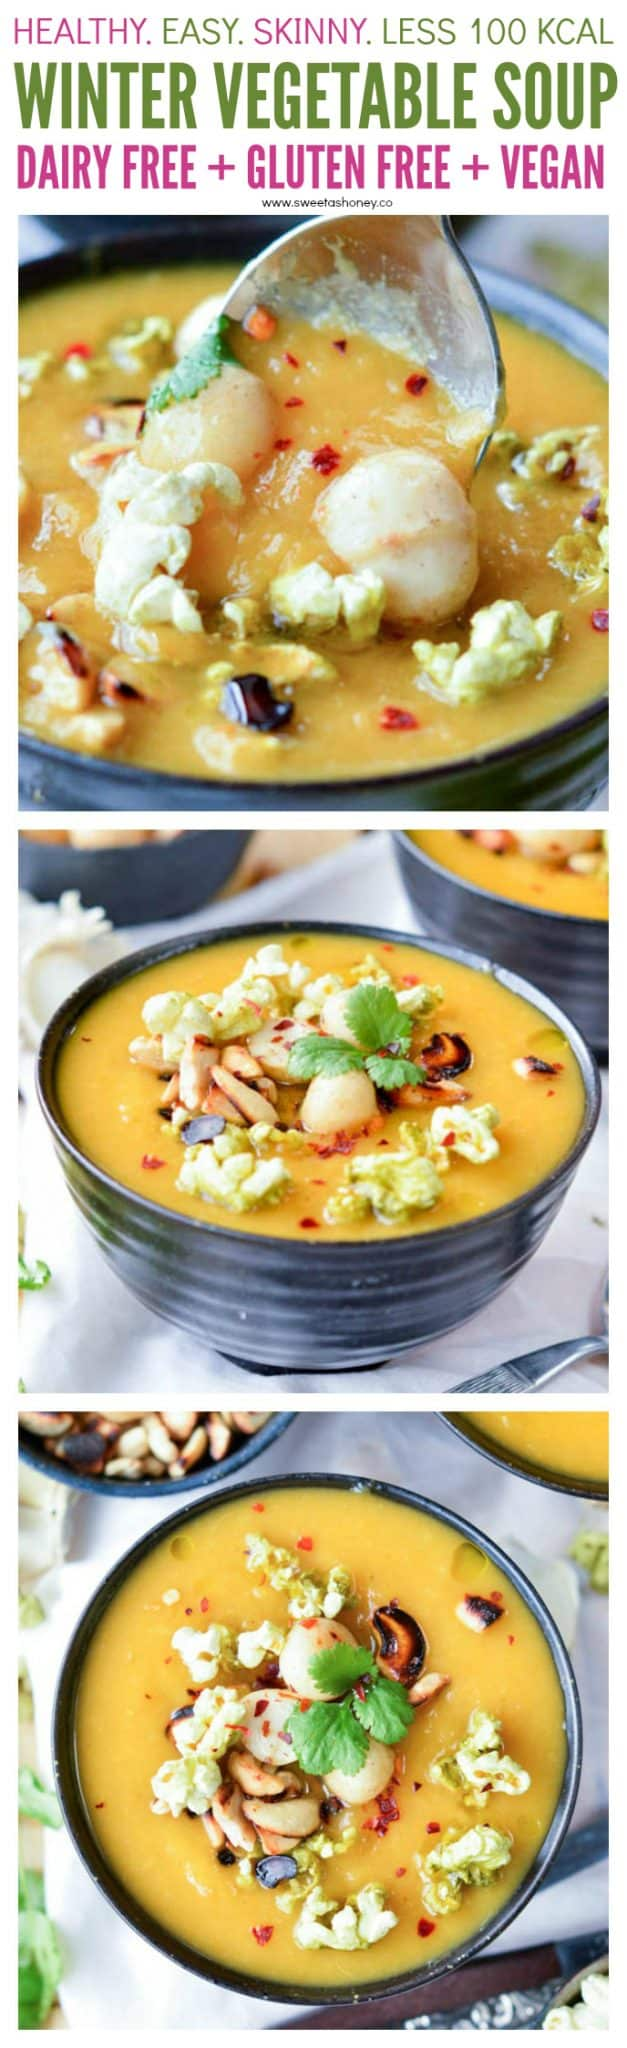 Healthy Creamy Winter Vegetable Soup with Cabbage and Sweet Potato. An easy skinny vegan soup with almond milk and less than 100 kcal per serve. Perfect comfort food dinner. #soup #soupoftheday #souprecipes